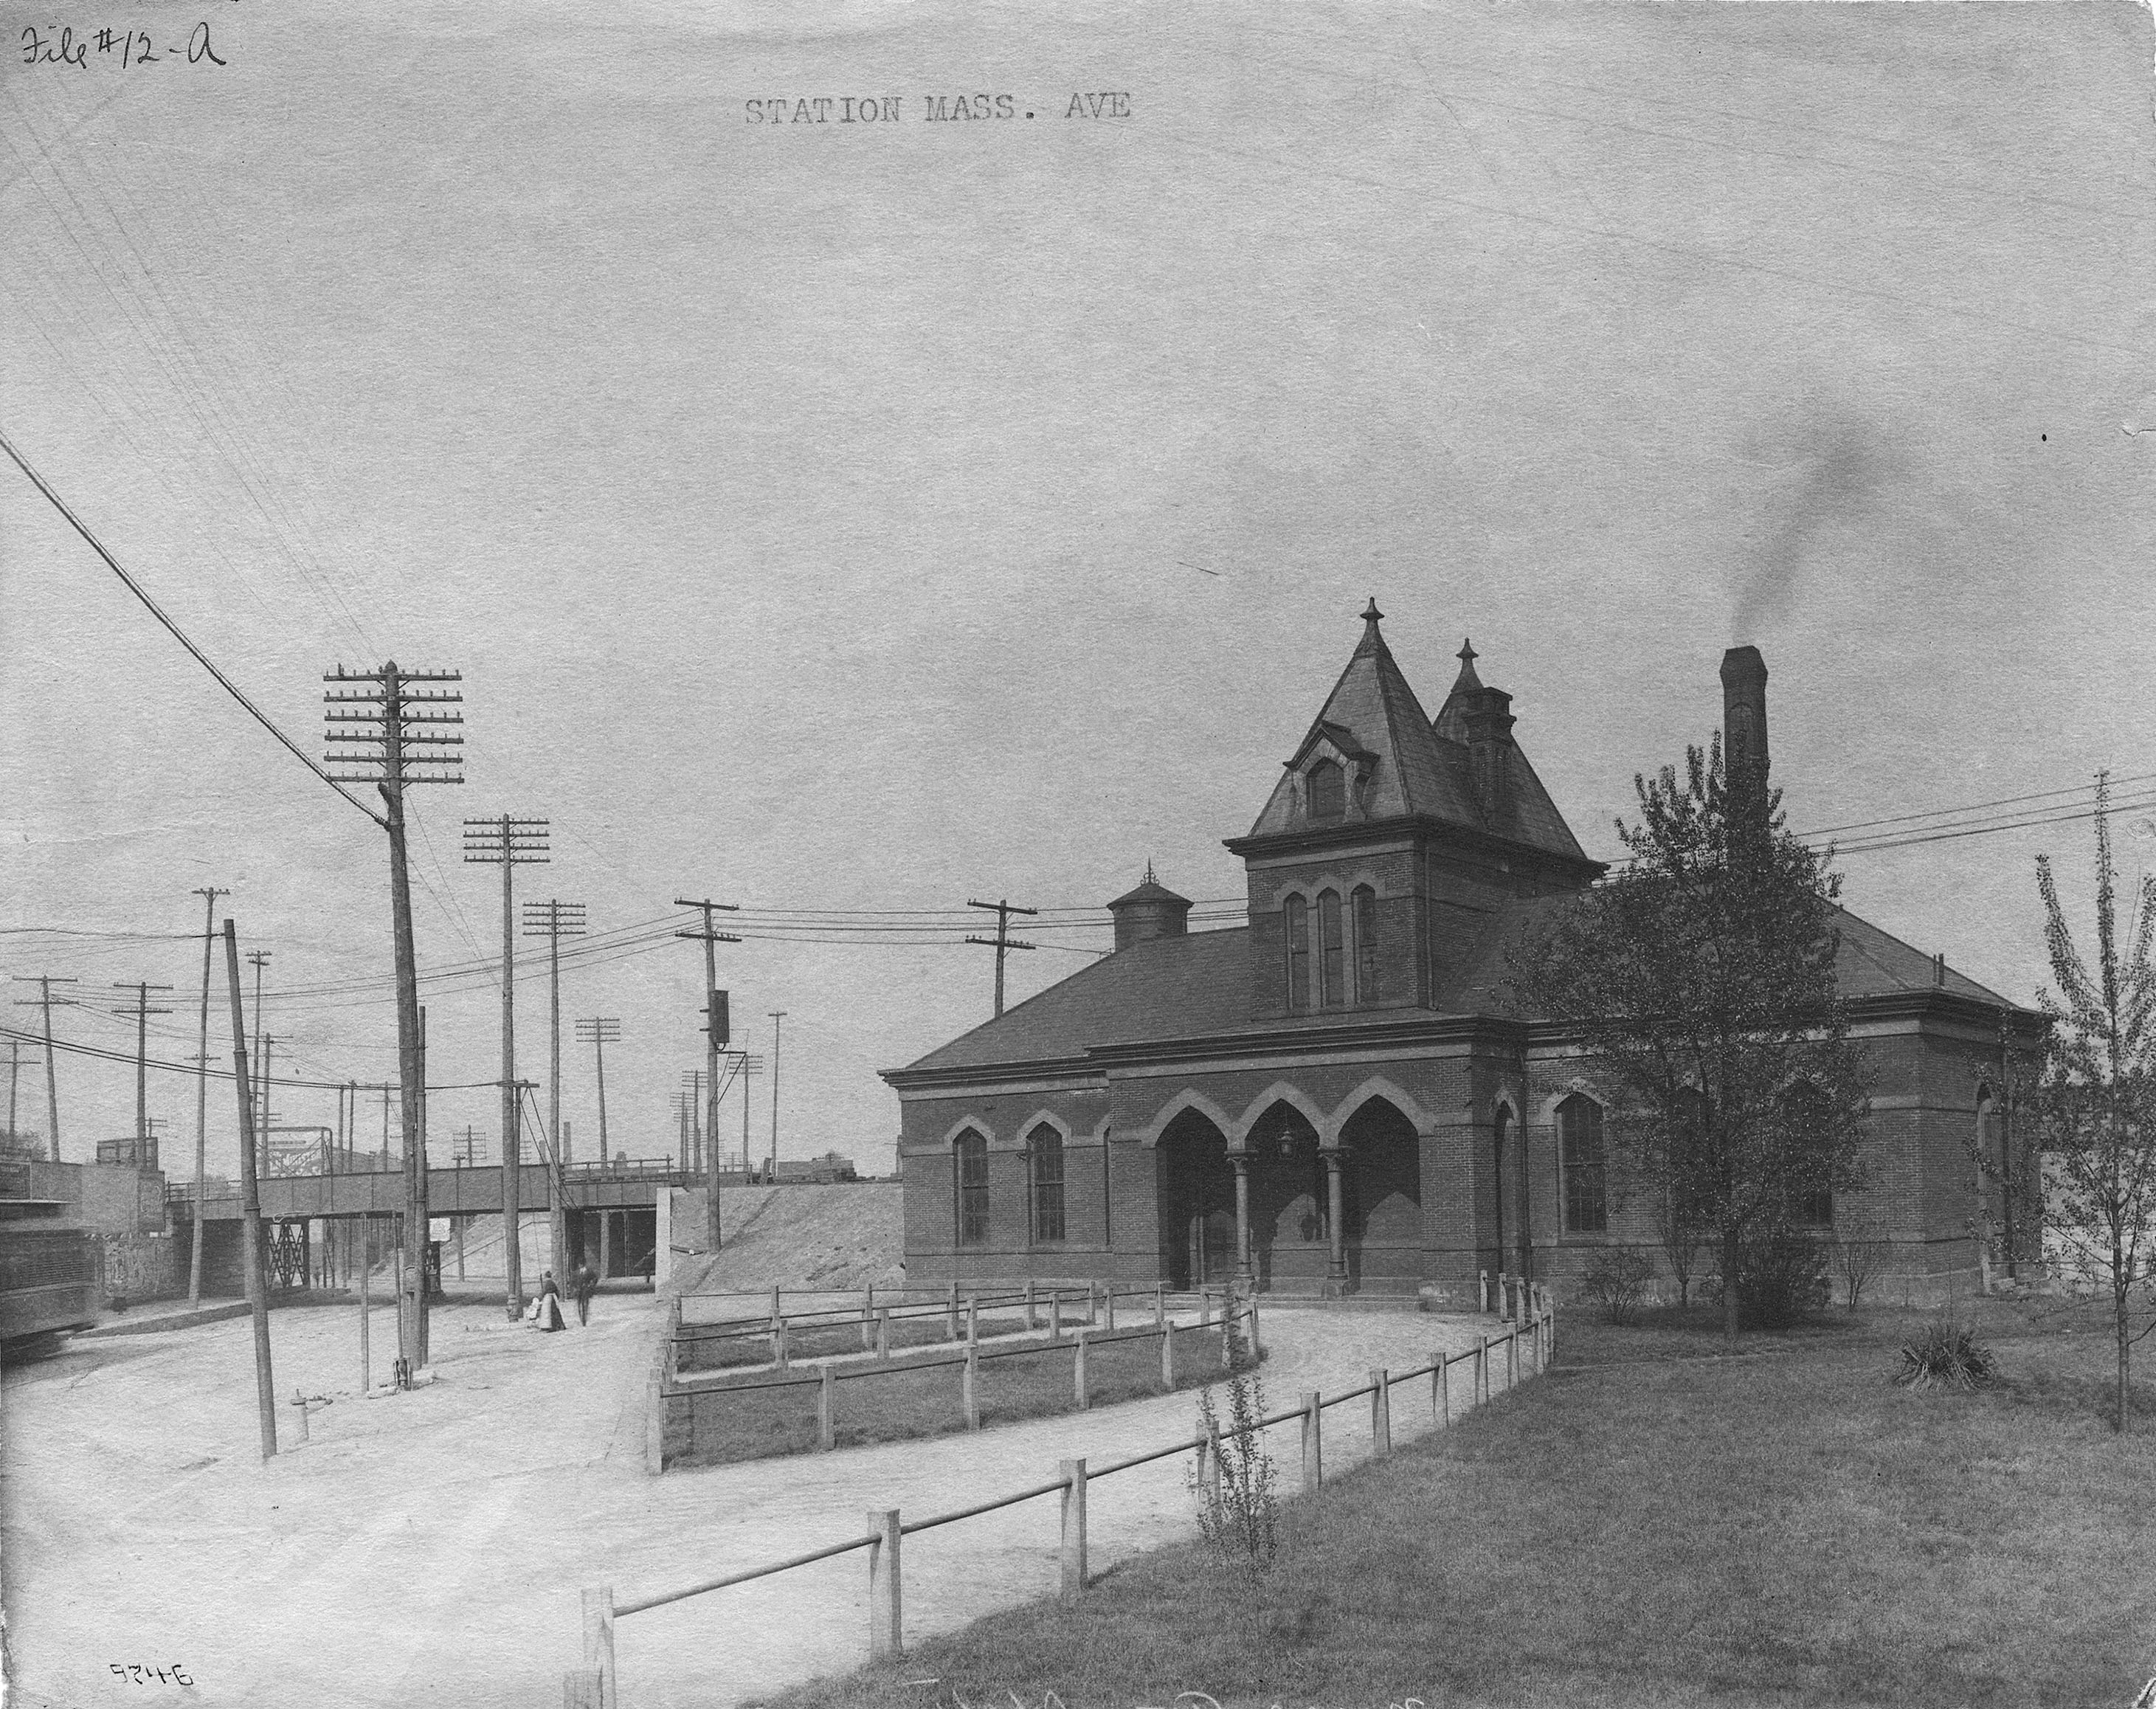 Then and Now: The Little Depot and the Interstate